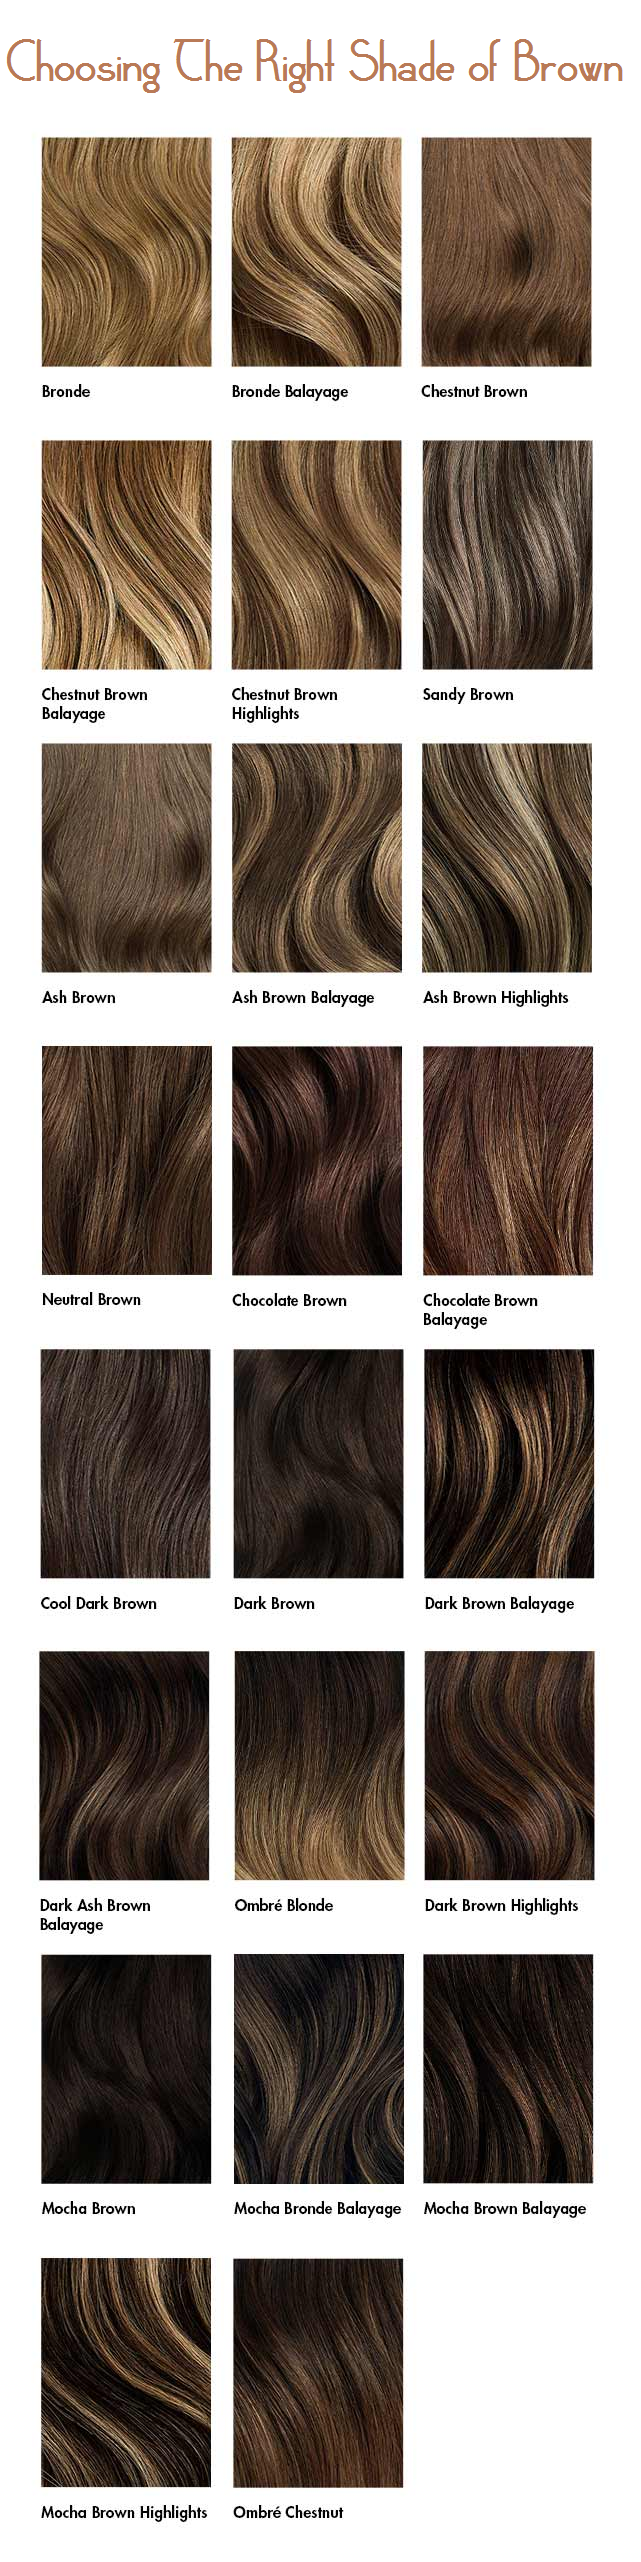 choosing the right shade of brown